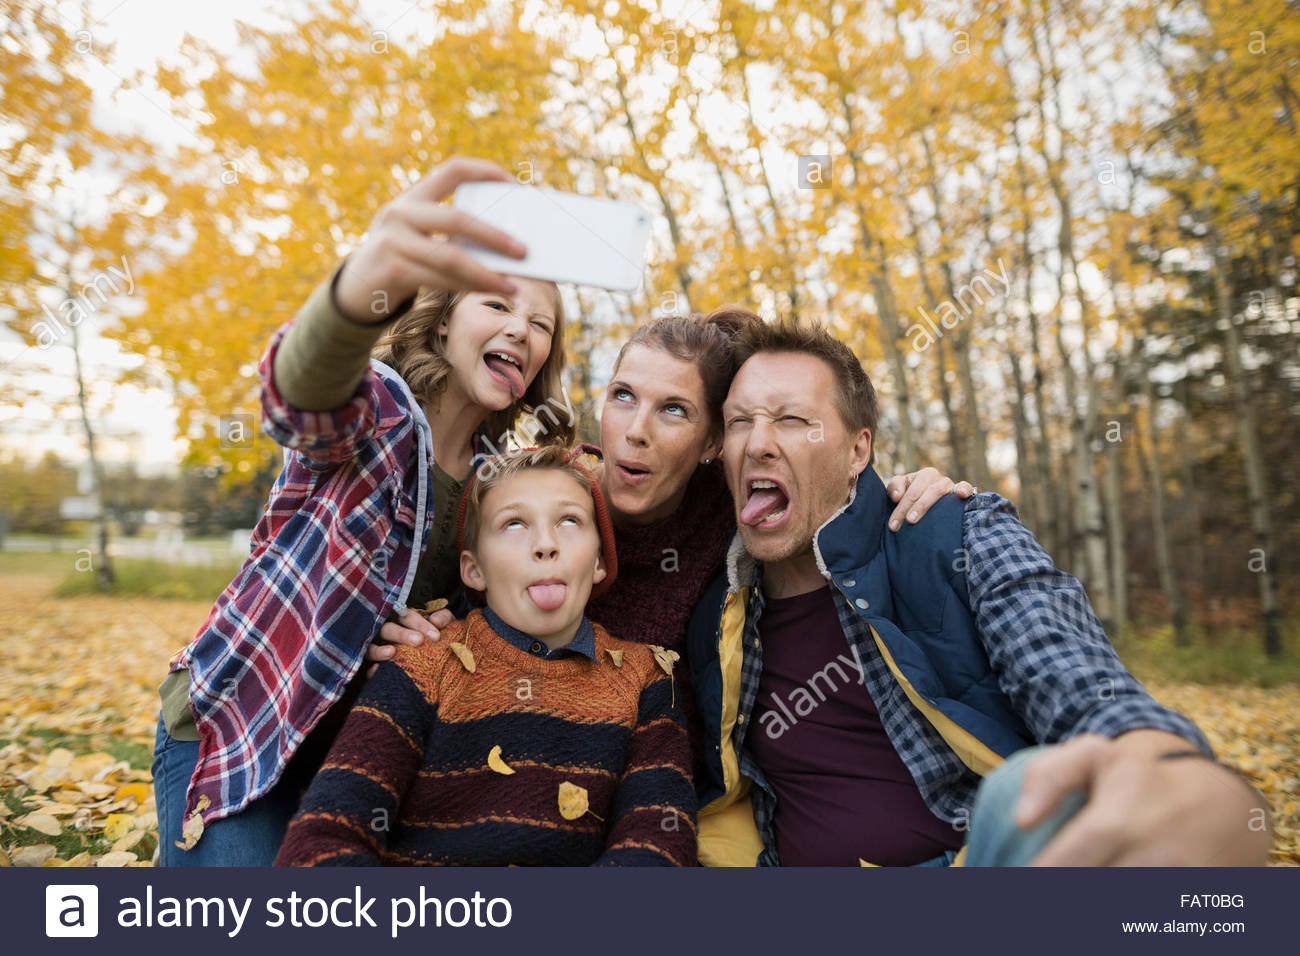 Silly family taking their faces selfies autumn park Photo Stock